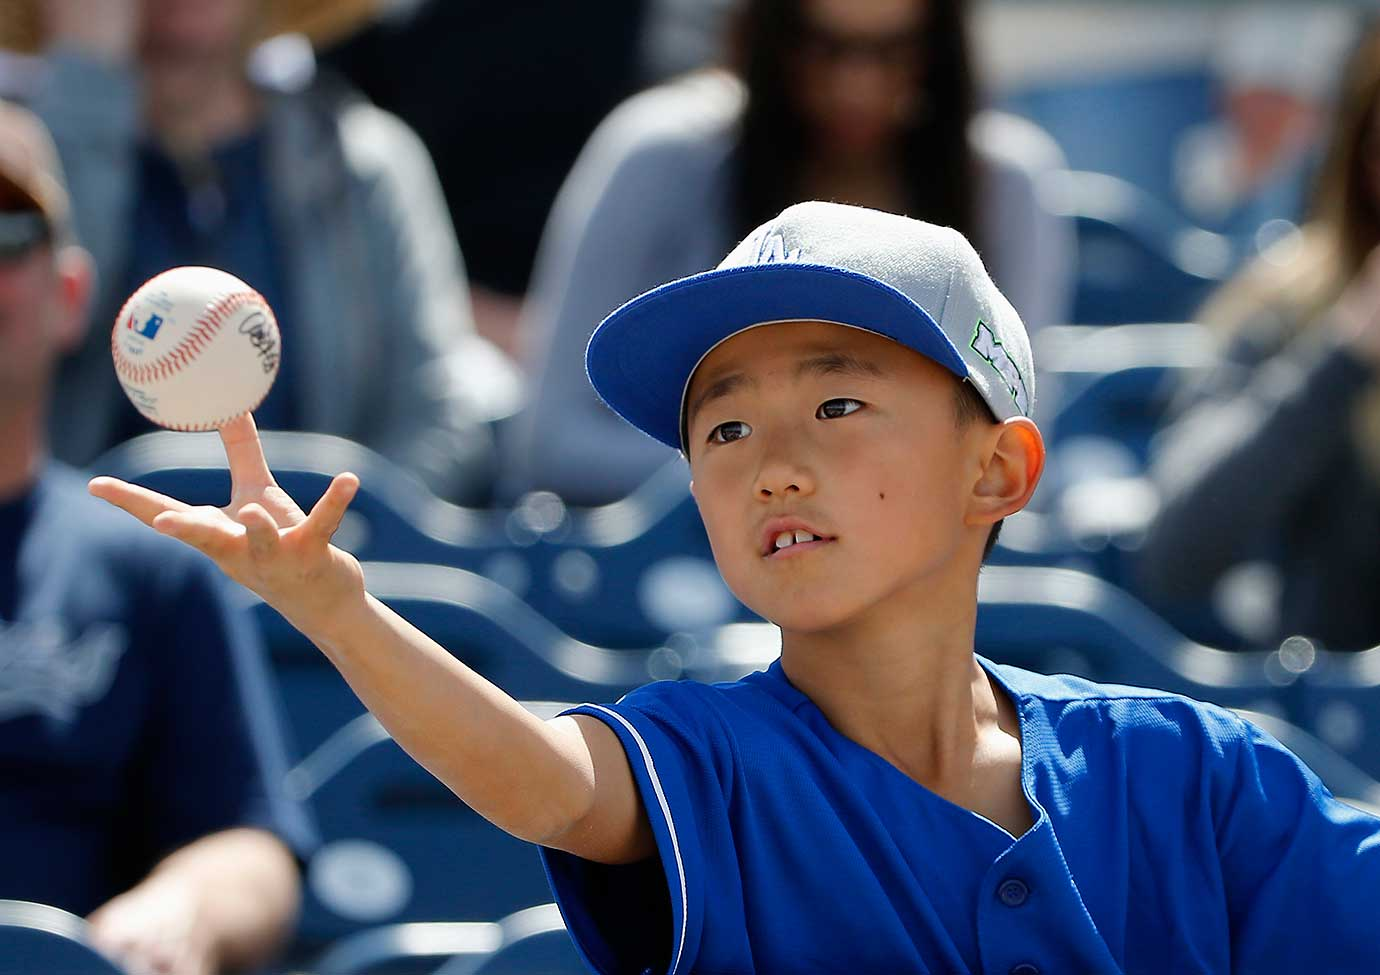 A young Los Angeles Dodgers fan gets his baseball back after getting an autograph.